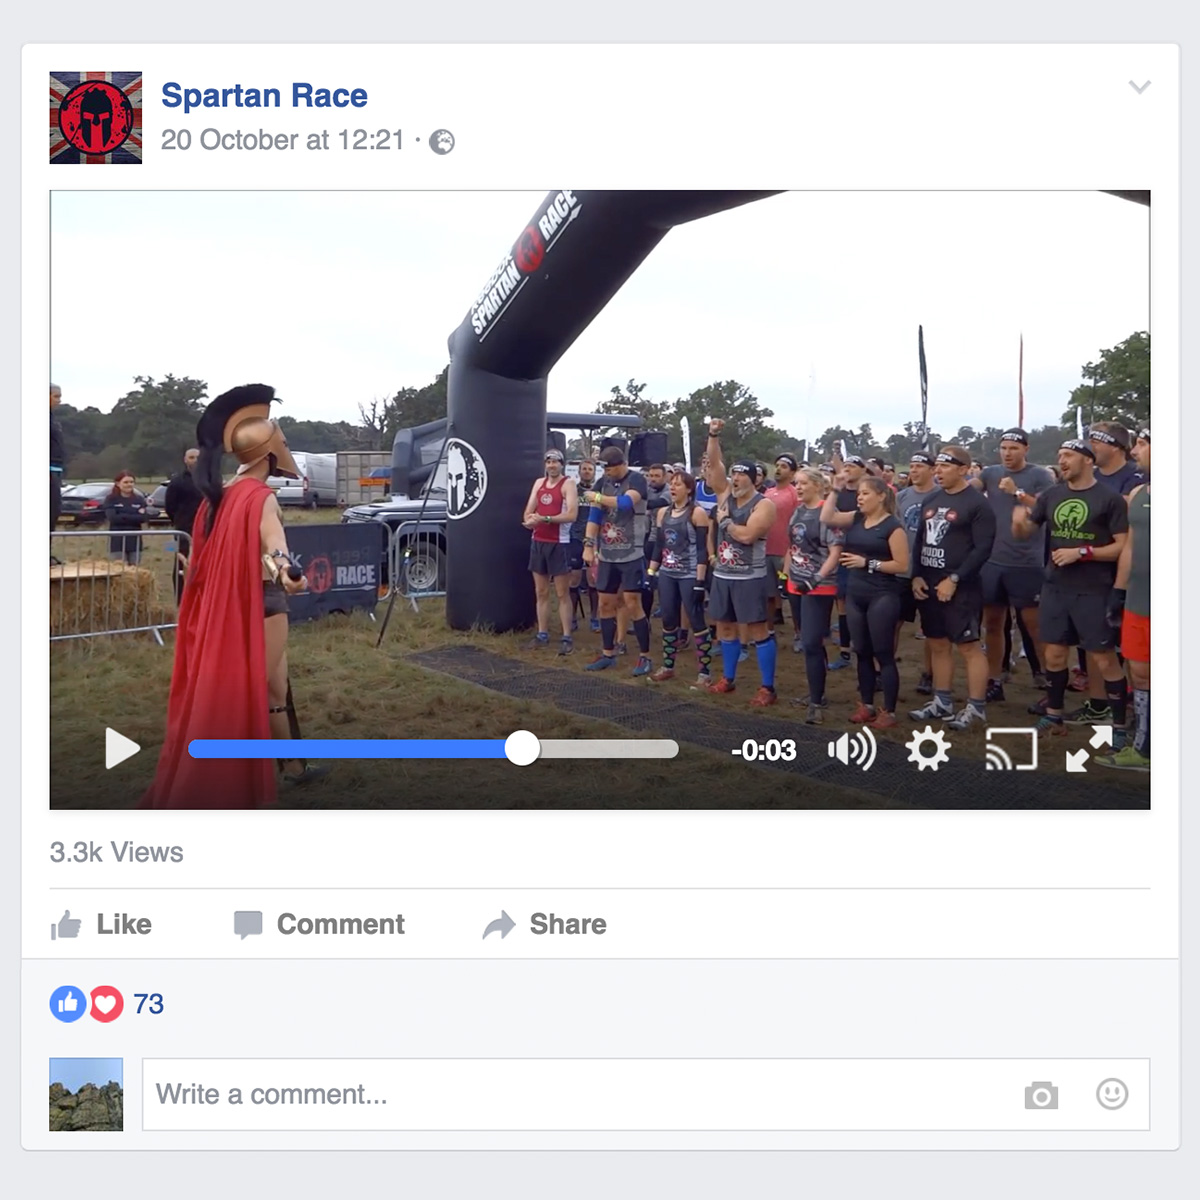 Video Production: Spartan